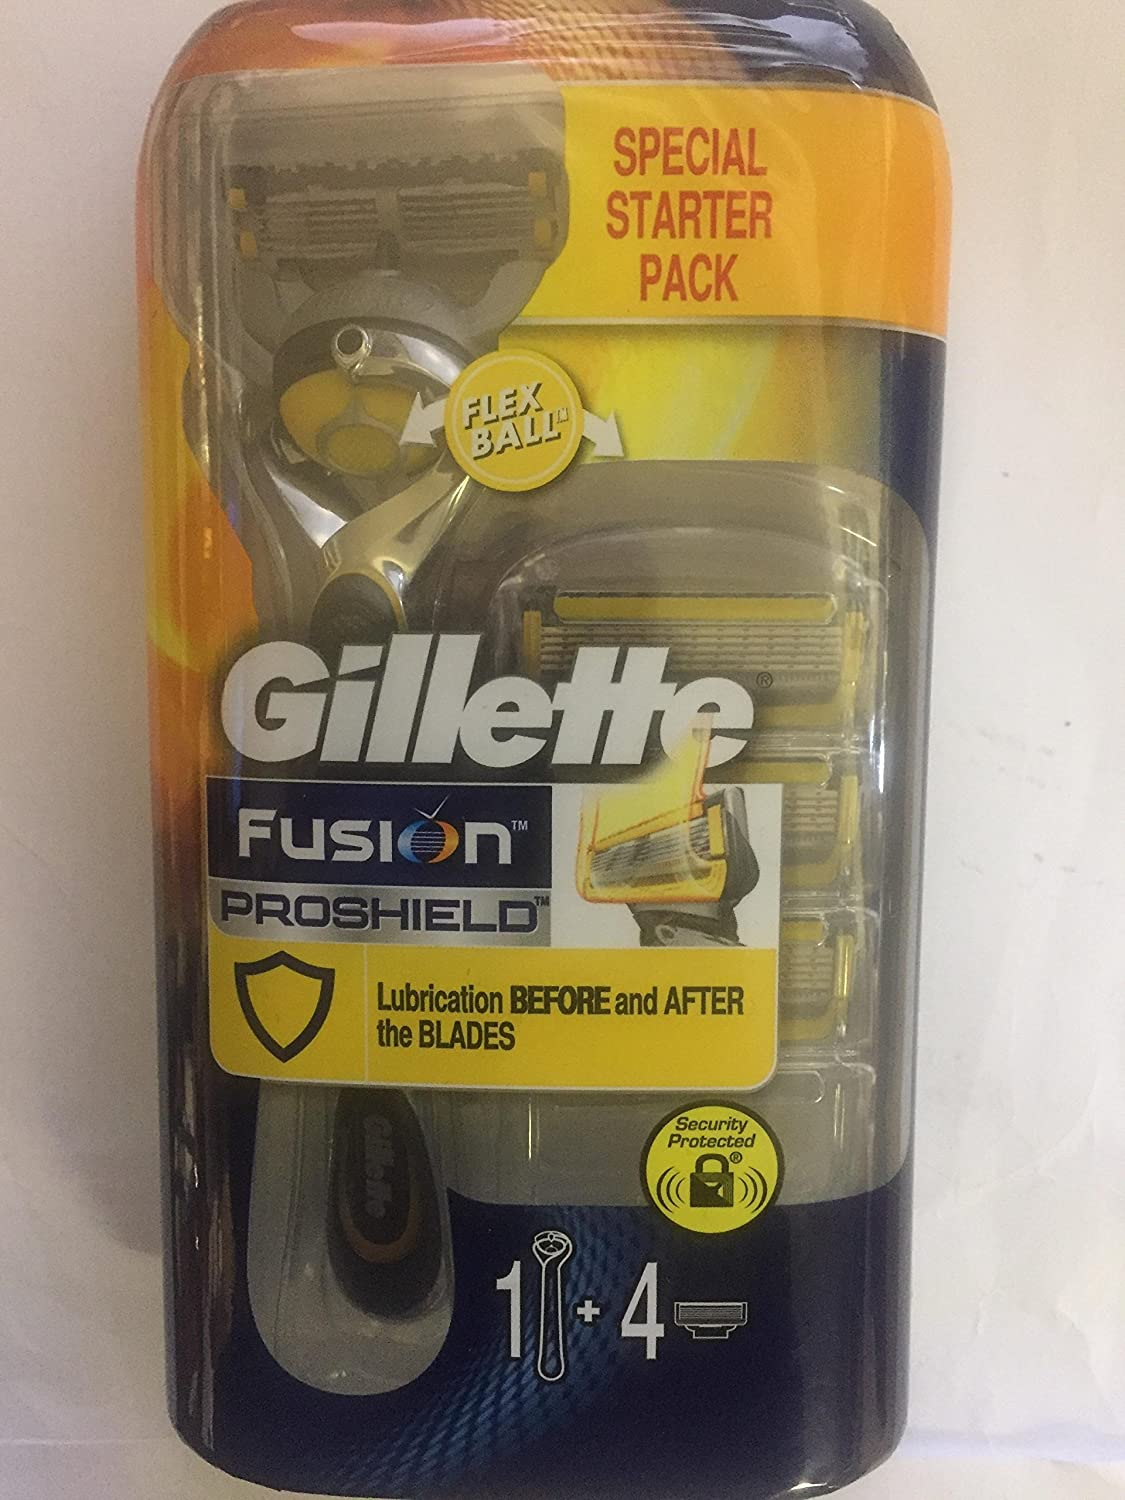 Gillette Fusion Proshield Specisl Starter Pack 1 4 Cartridges